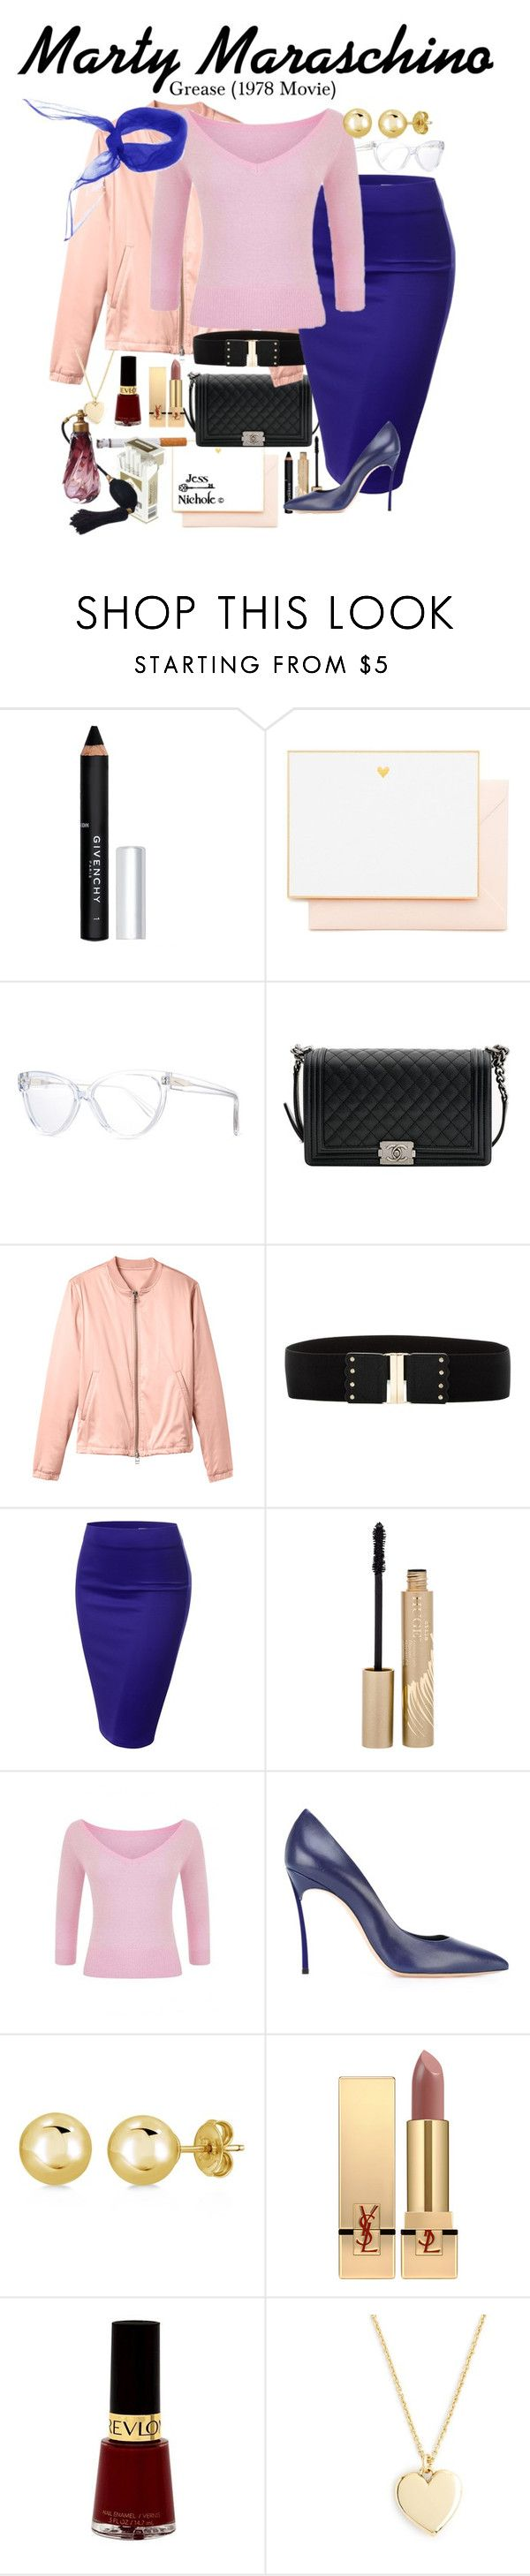 """Grease (1978 Movie): Marty Maraschino"" by jess-nichole ❤ liked on Polyvore featuring Givenchy, Joie, Prism, Chanel, 10 Crosby Derek Lam, Betsey Johnson, J.TOMSON, Stila, Collectif and Casadei"